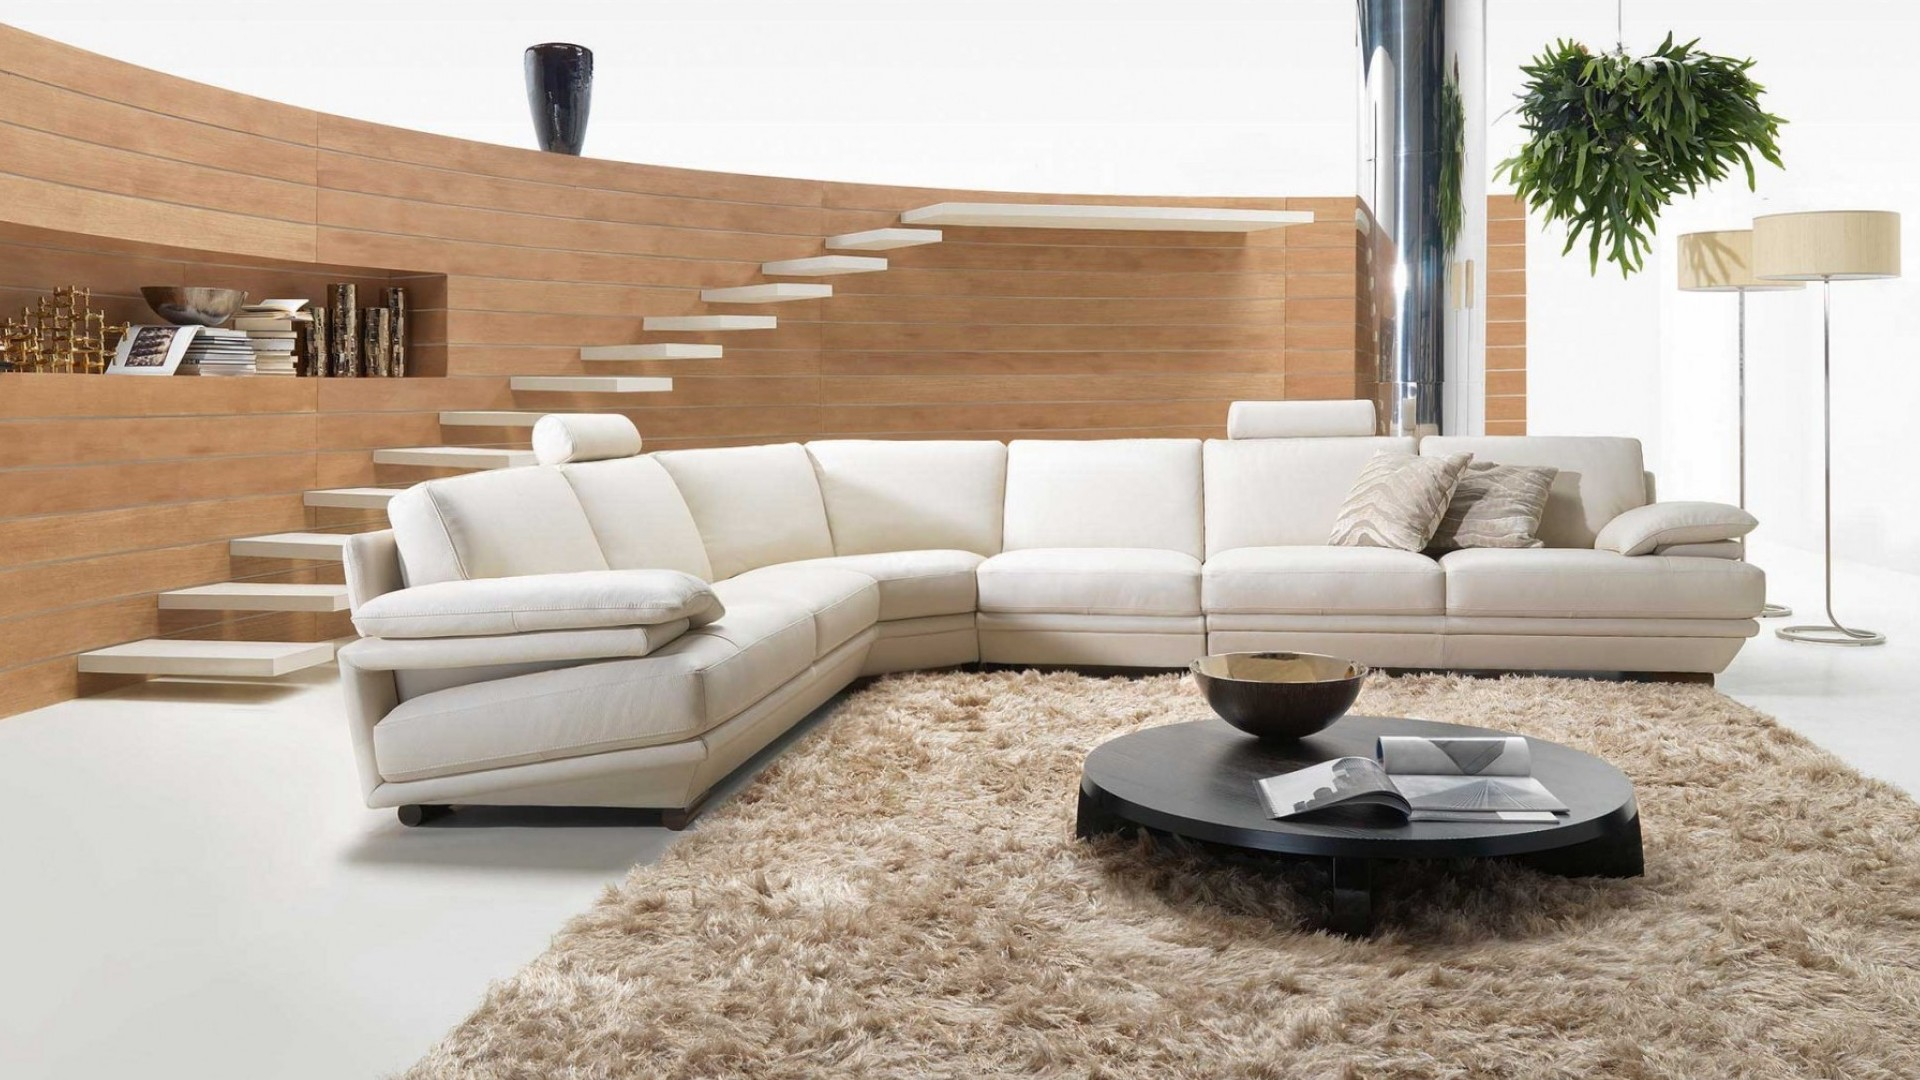 Natuzzi Sectional Sofa Natuzzi Editions Sectional Sofa B708 Modern Sofas Thesofa